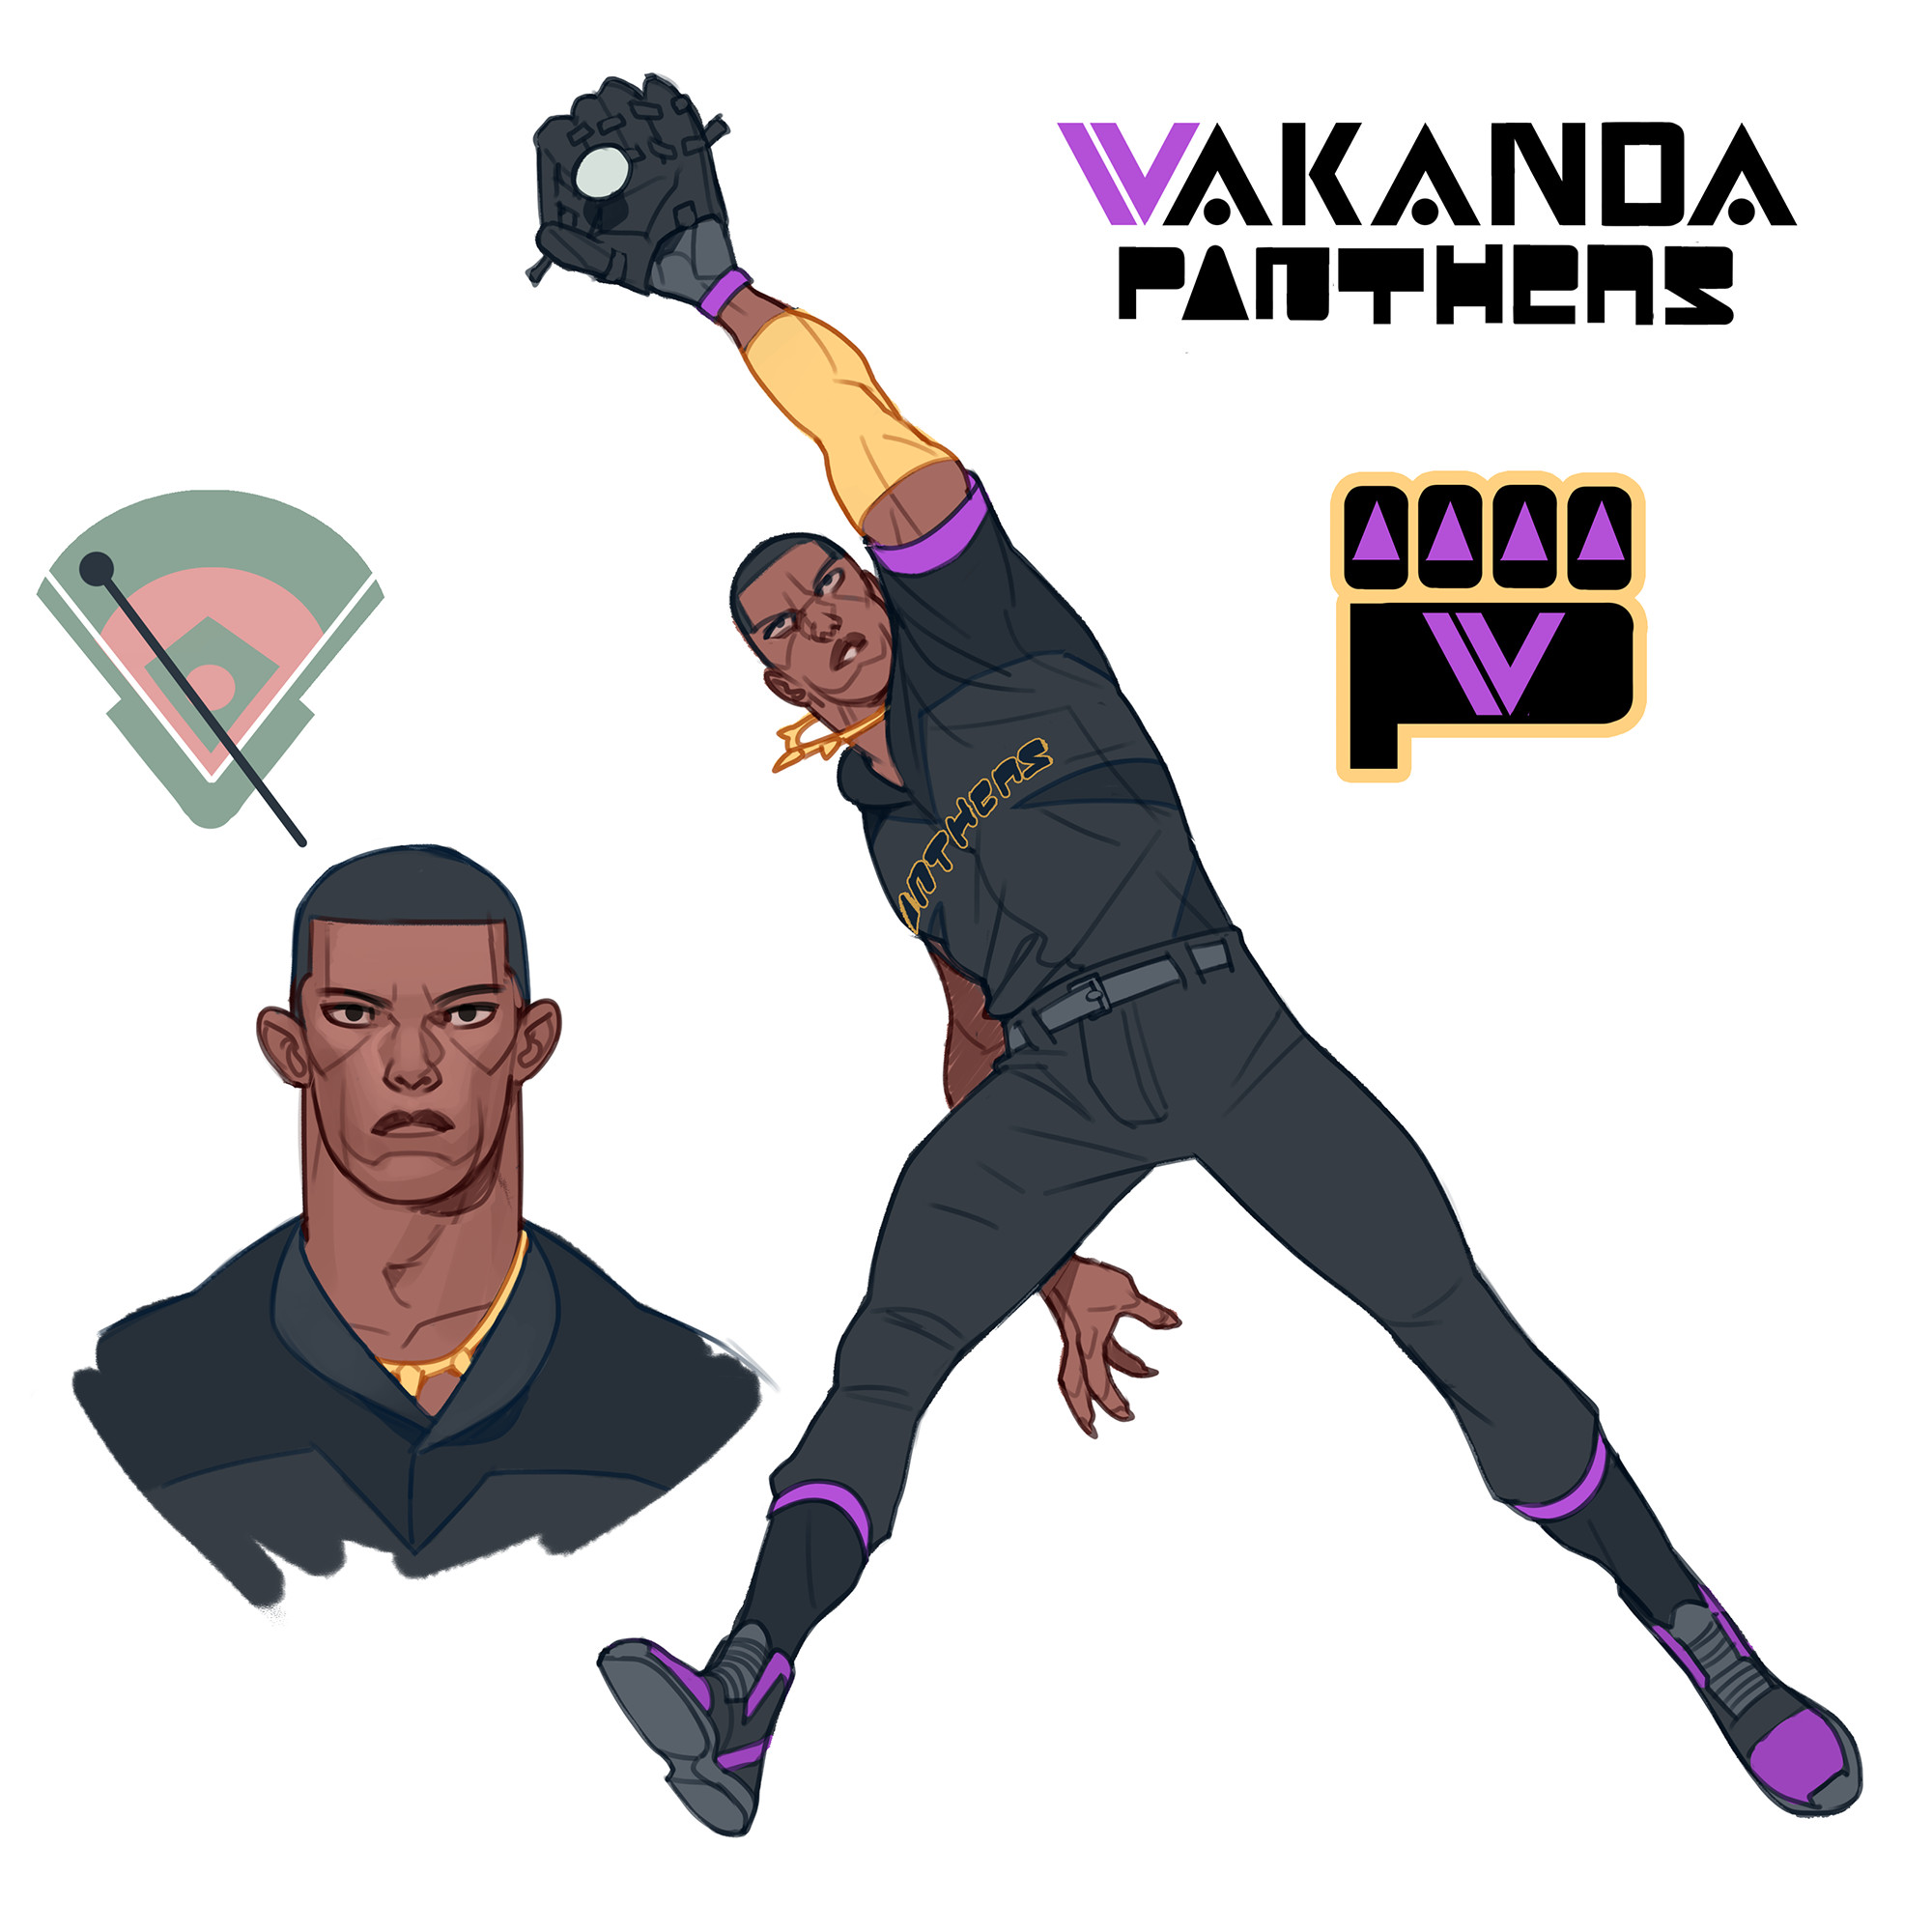 The Wakanda Panthers!